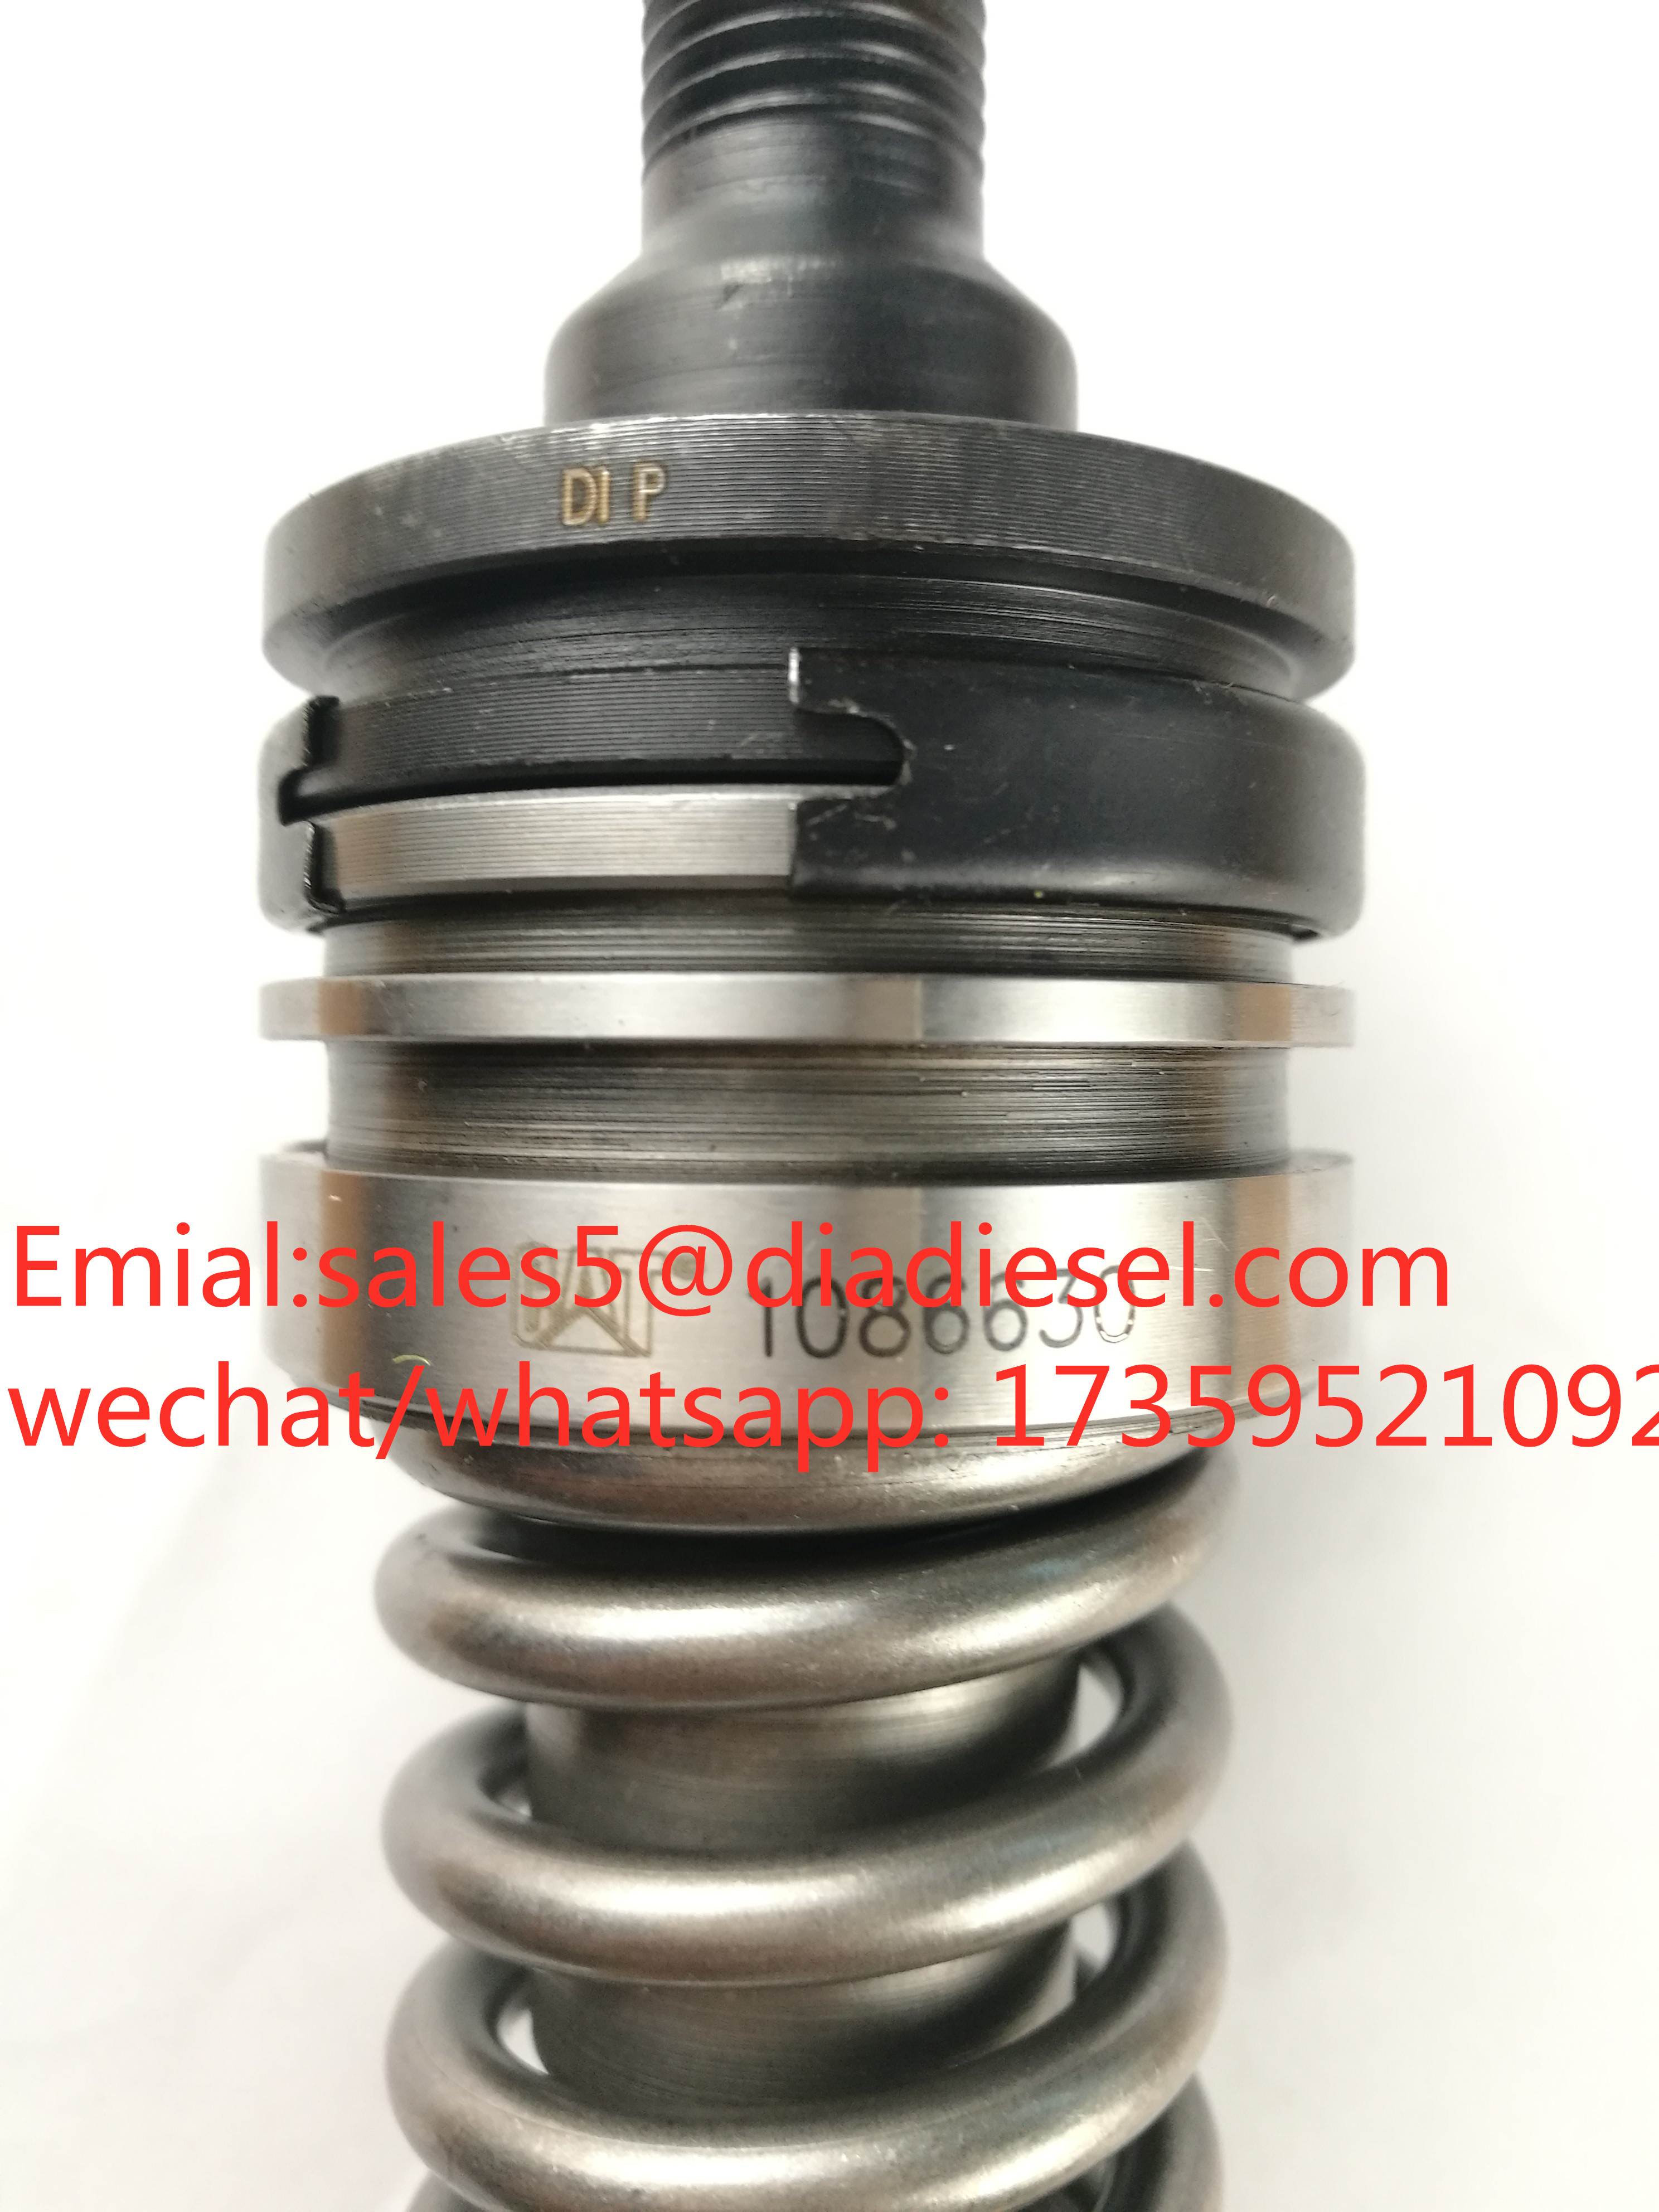 High Quality Diesel Injection Pump Plunger 108-6630 for Caterpillar Engine